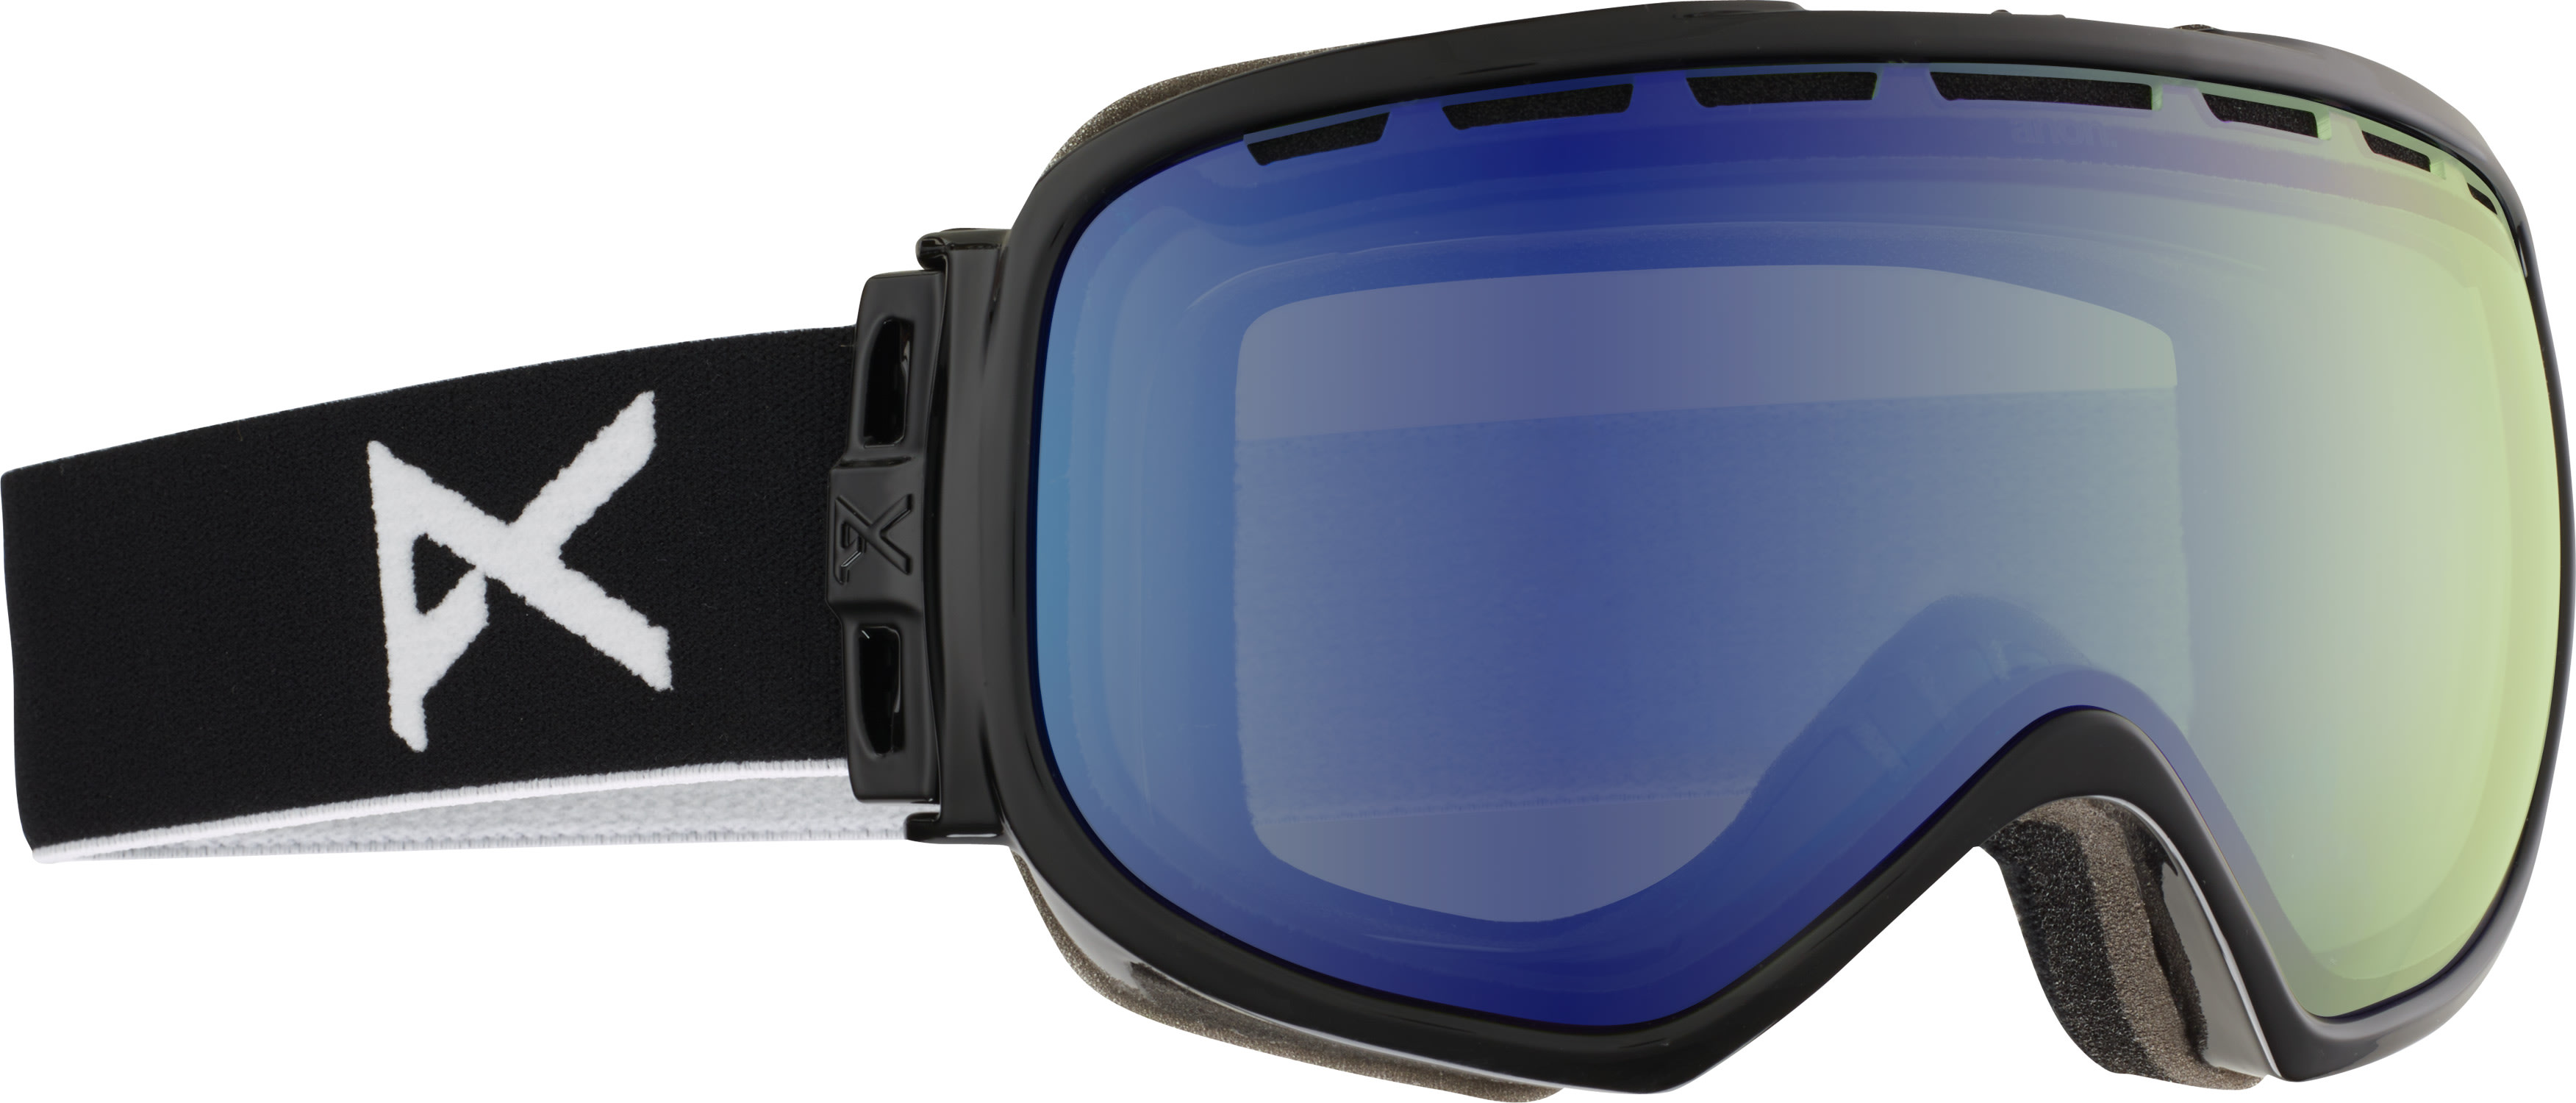 anon goggles  On Sale Anon Insurgent Goggles up to 40% off